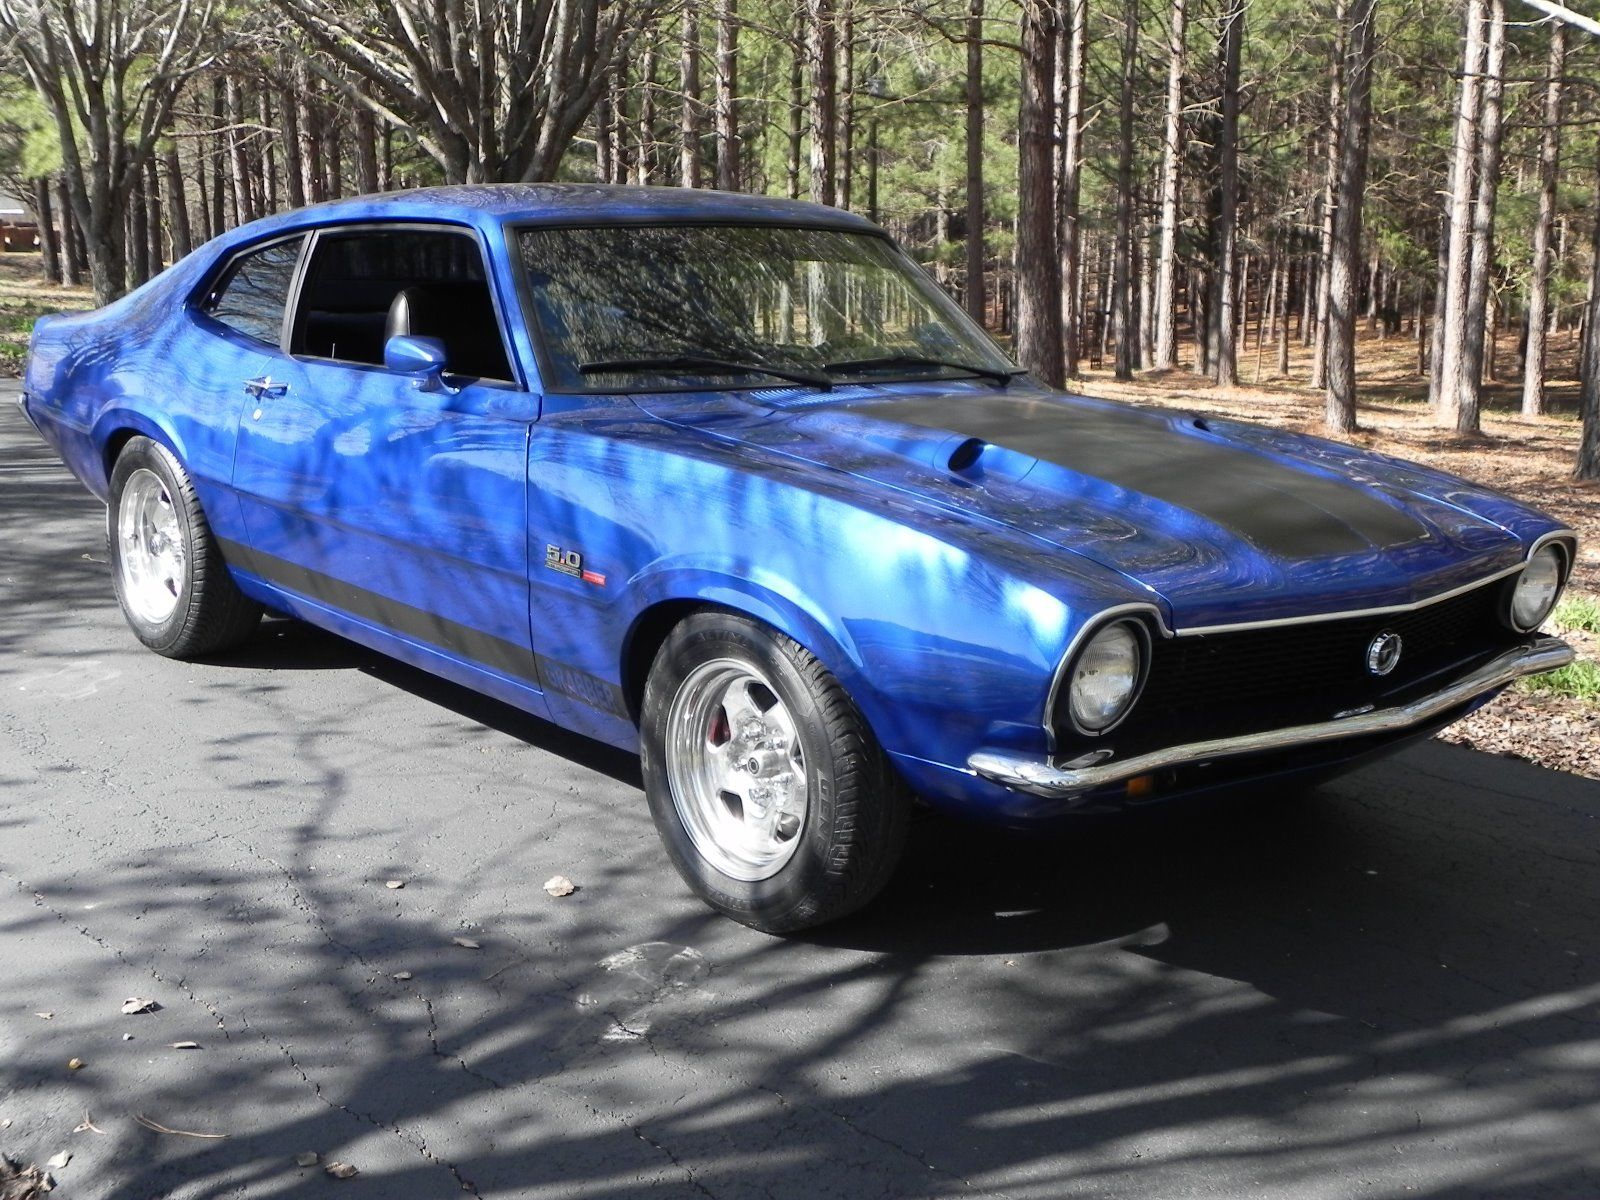 Daily turismo discount restomod 1971 ford maverick the little maverick was the replacement for the outgoing compact ford falcon which spent a half a year on the mid sized torino chassis for some unknown sciox Choice Image